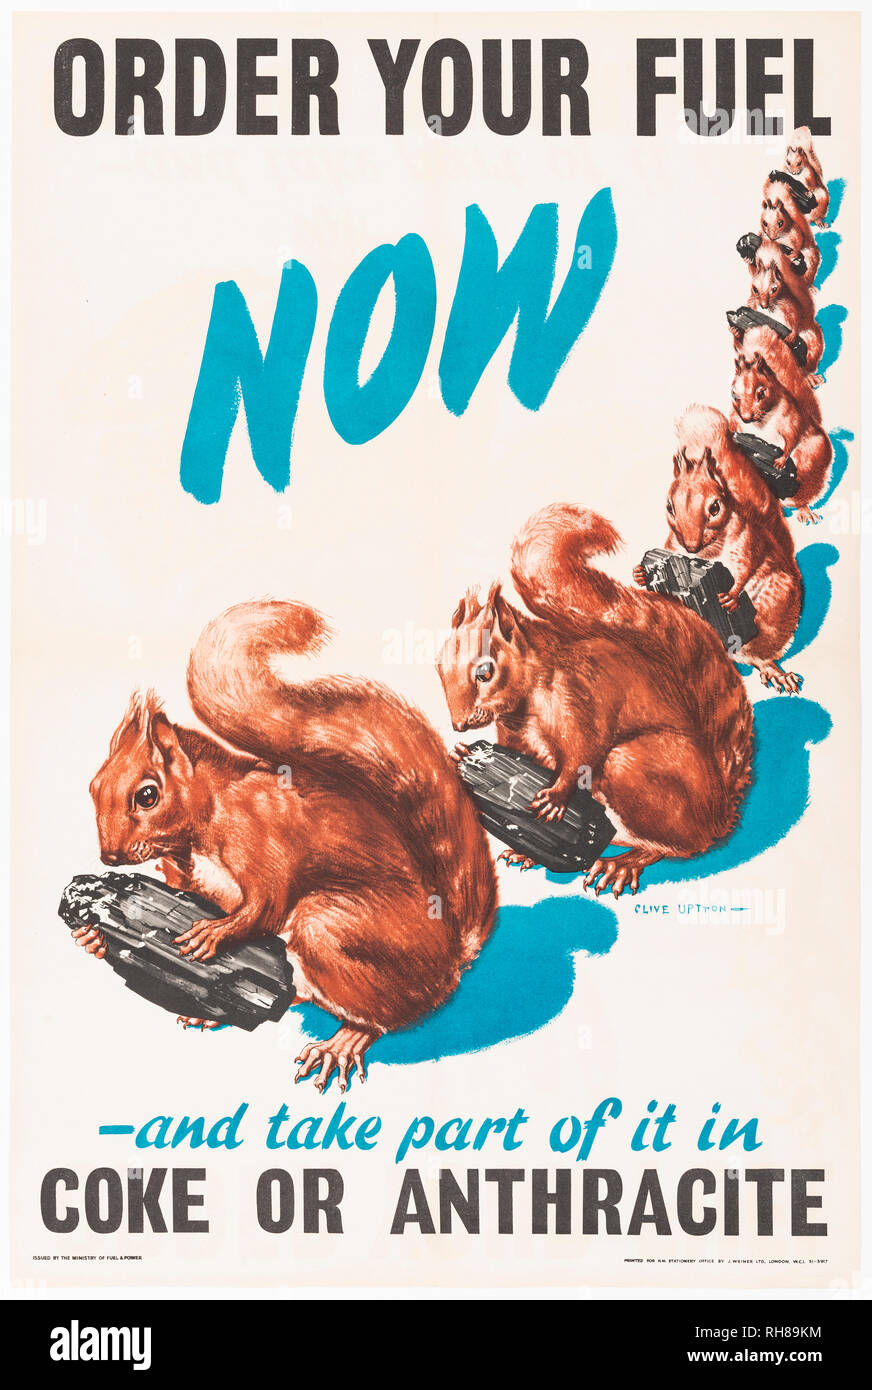 'Order your fuel now' second world war propaganda poster featuring squirrels carrying lumps of coal. - Stock Image